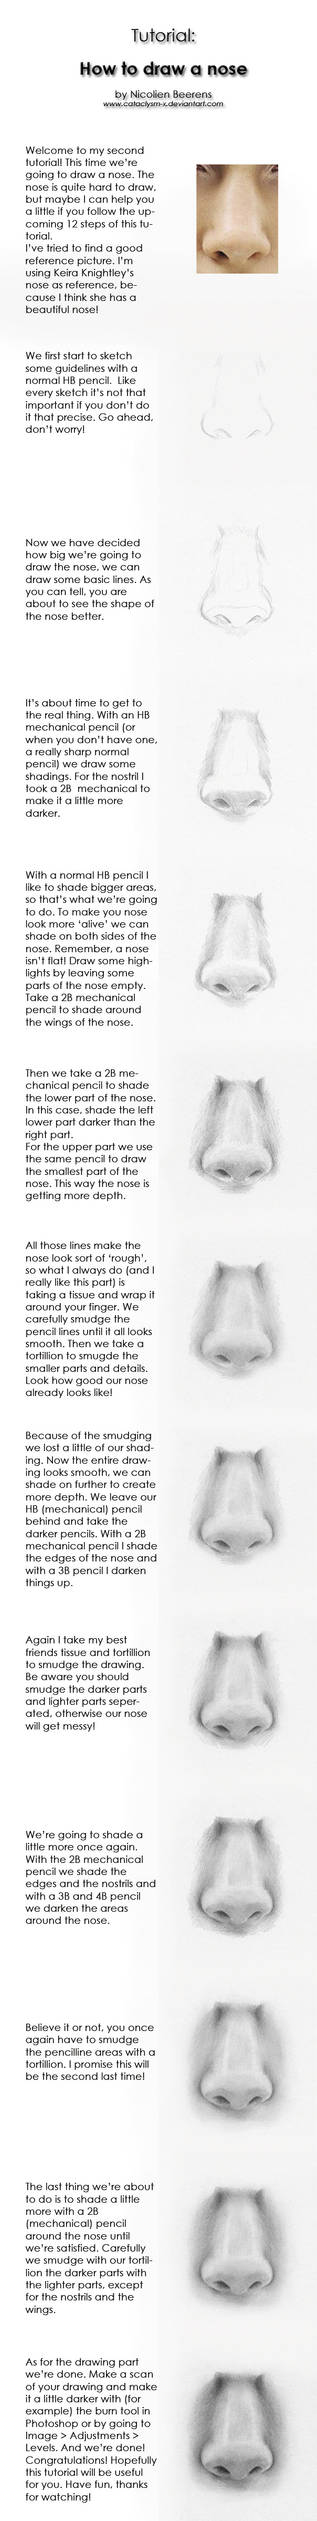 Tutorial: how to draw noses